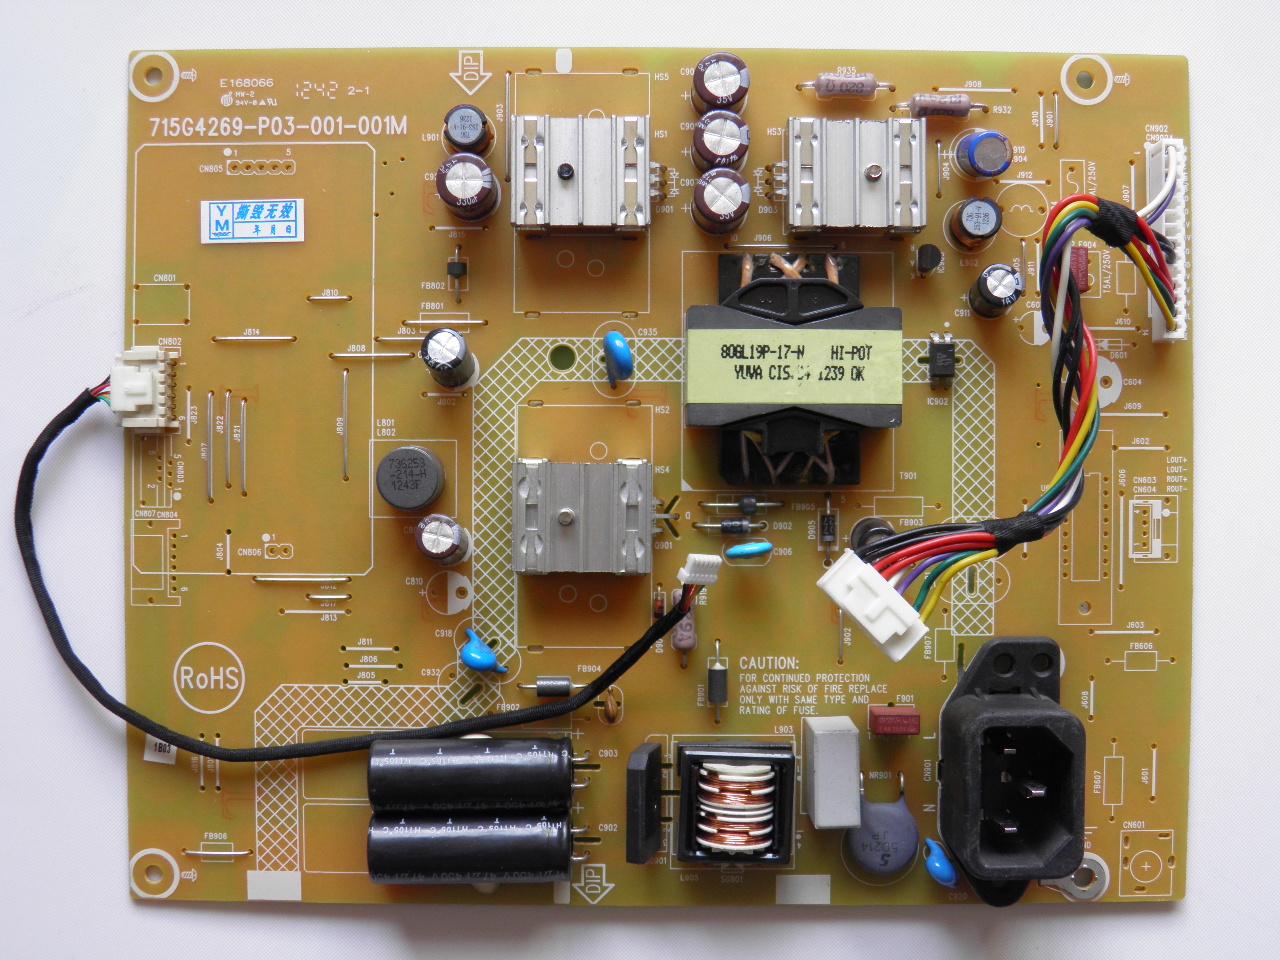 Envision P2473WL LCD Power board 715G4269-P03-001-001M